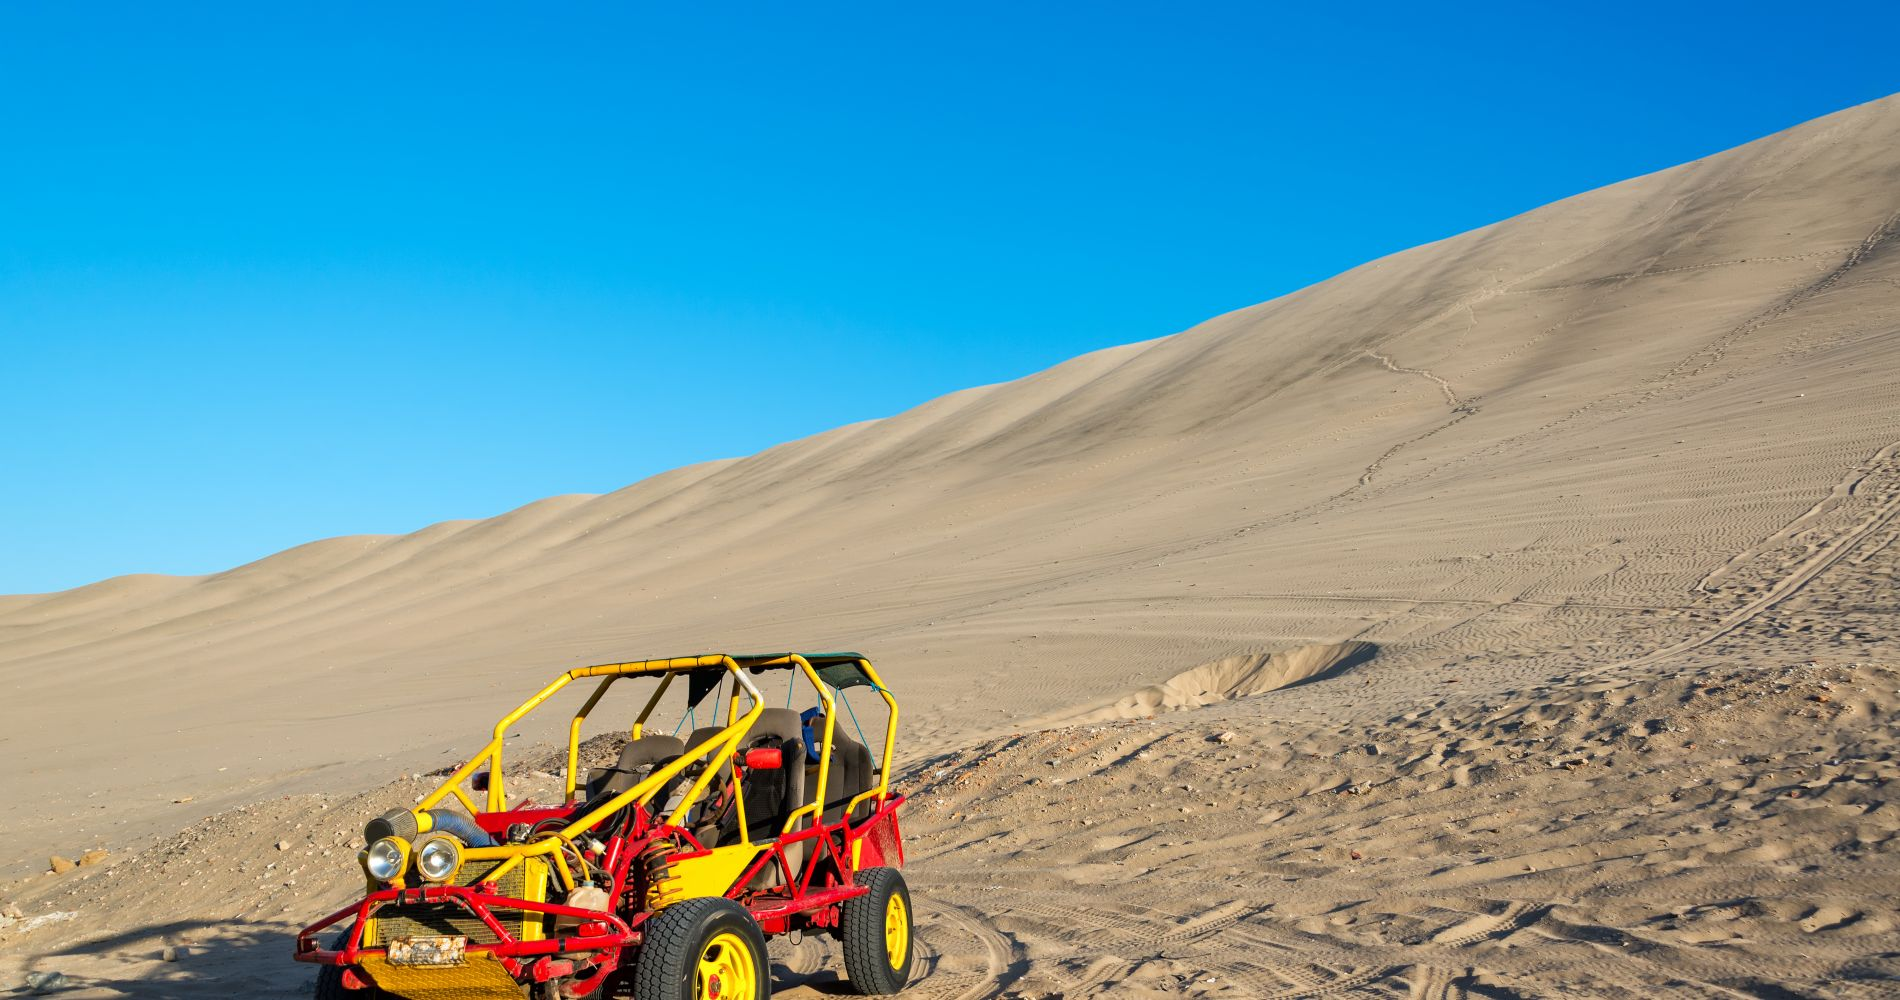 Sanboarding in Huacachina for Two in Peru